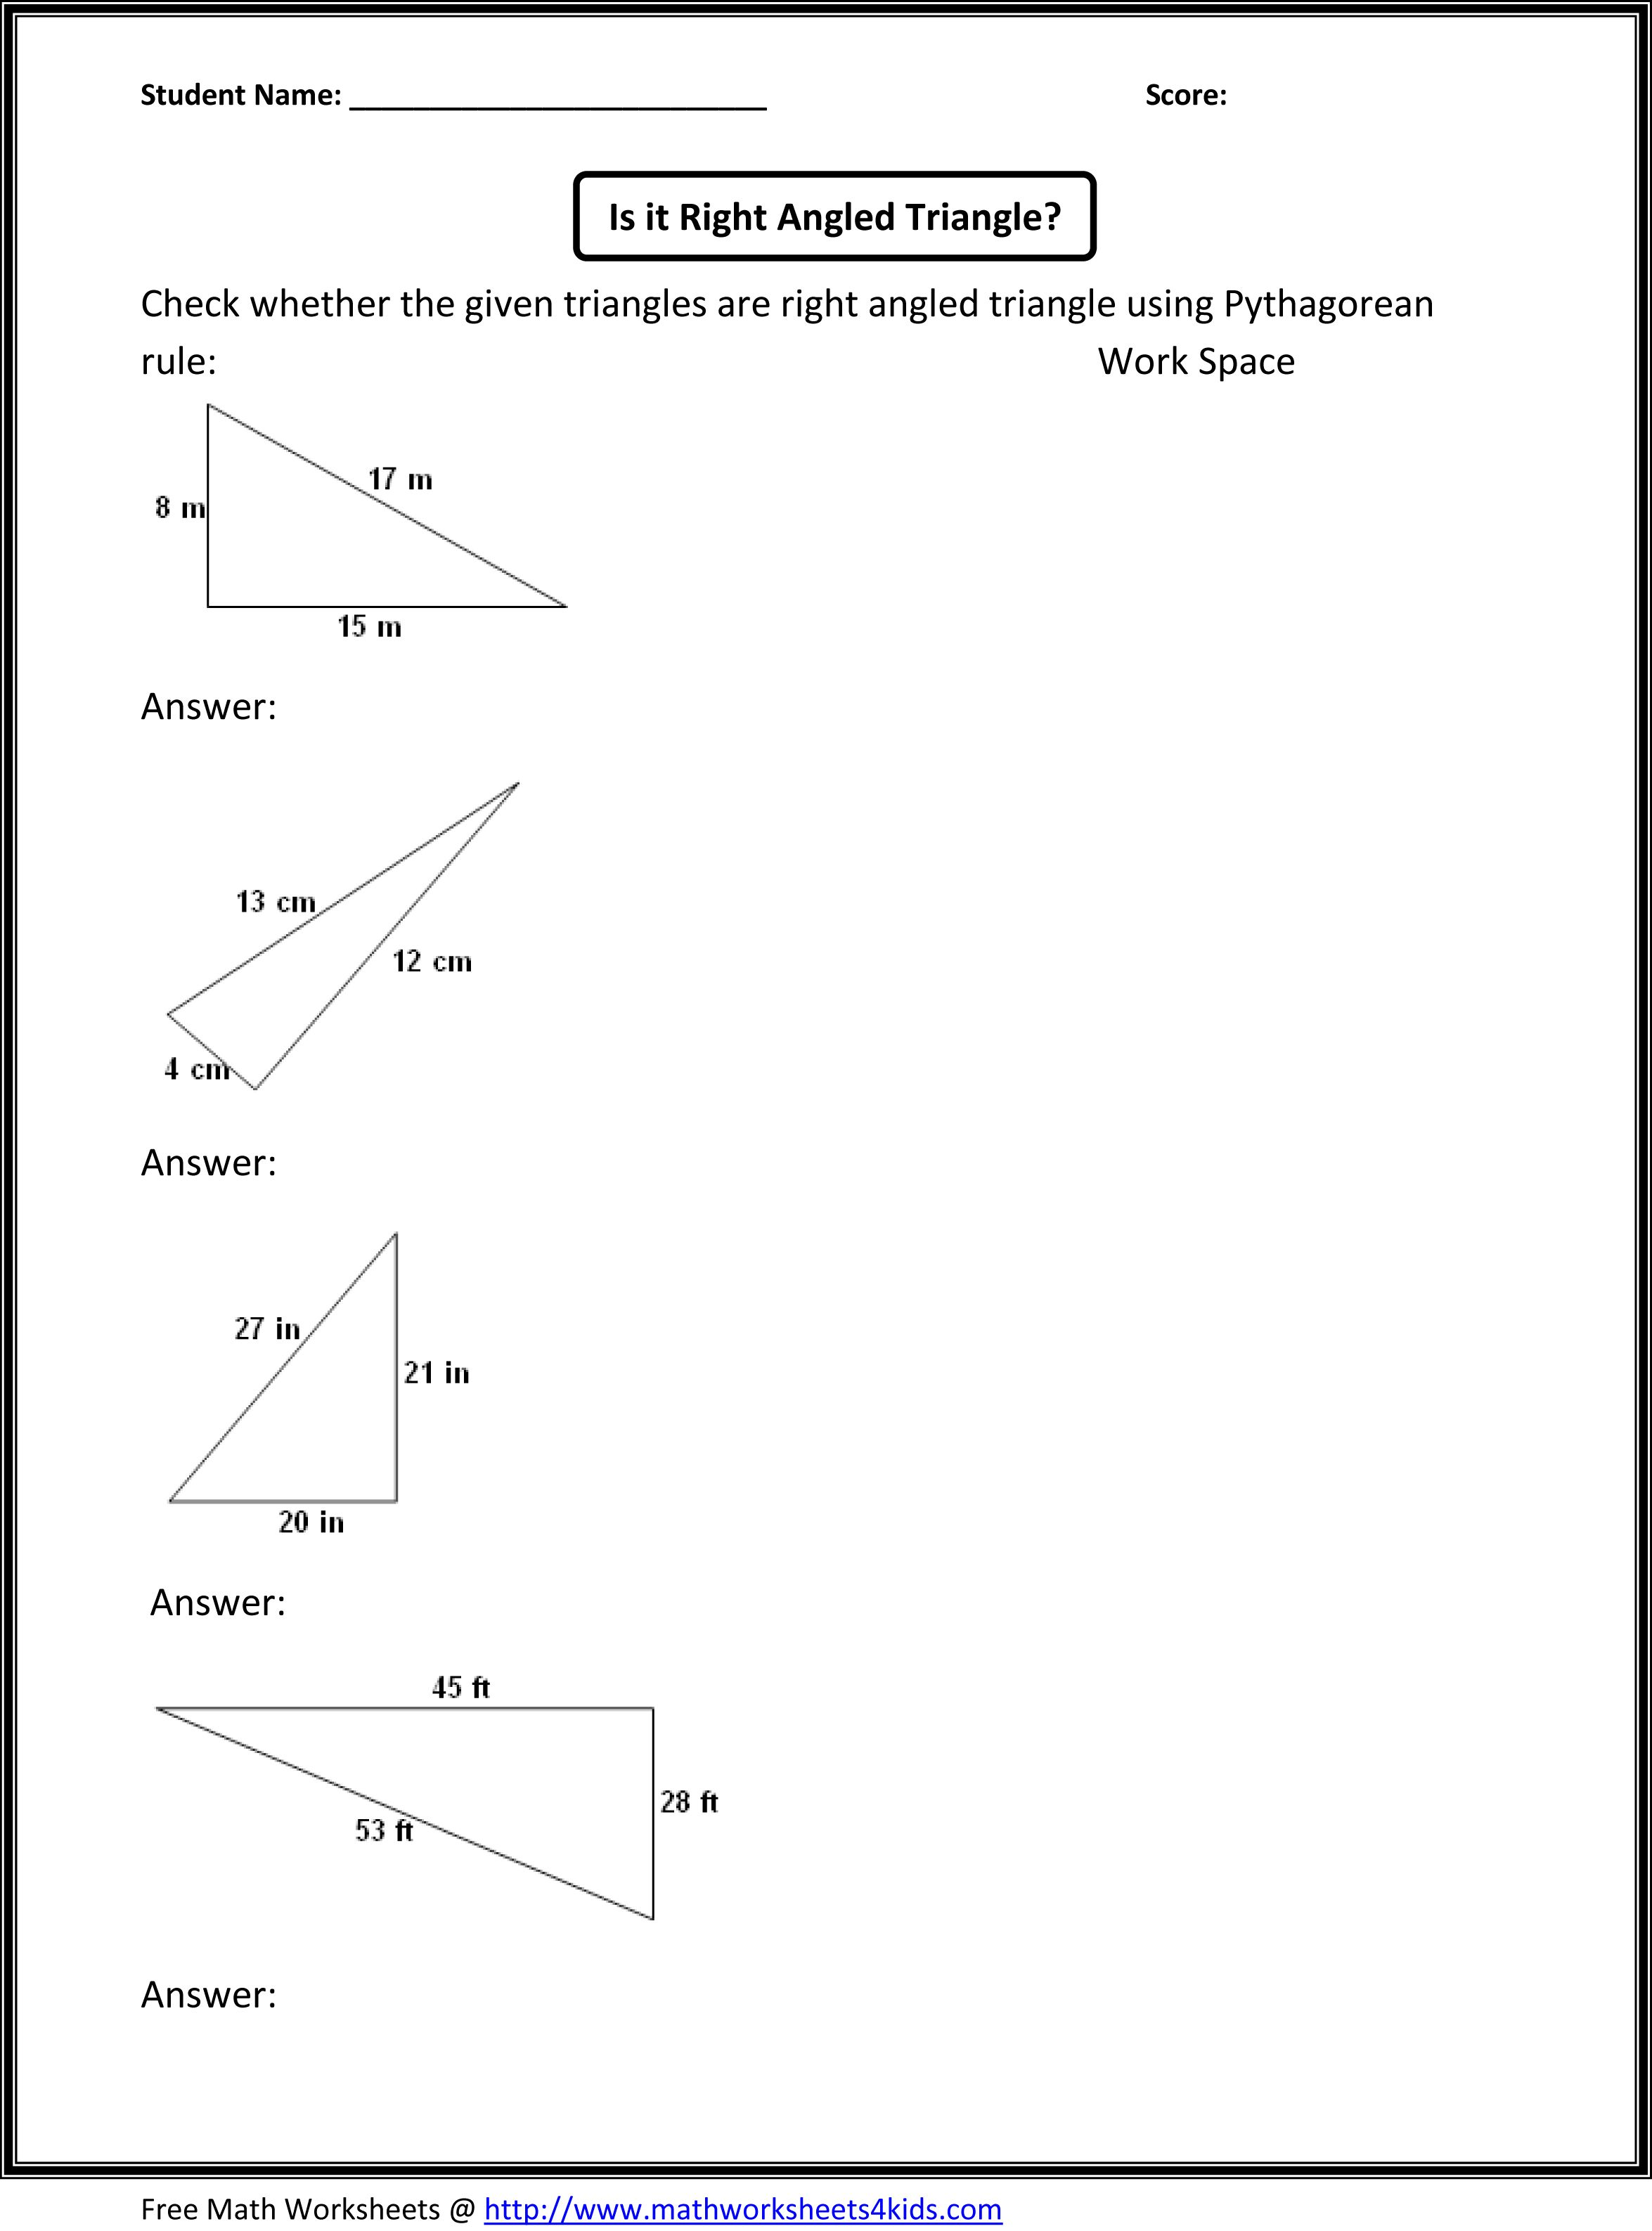 Pythagorean theorem worksheet – Pythagorean Theorem Worksheets